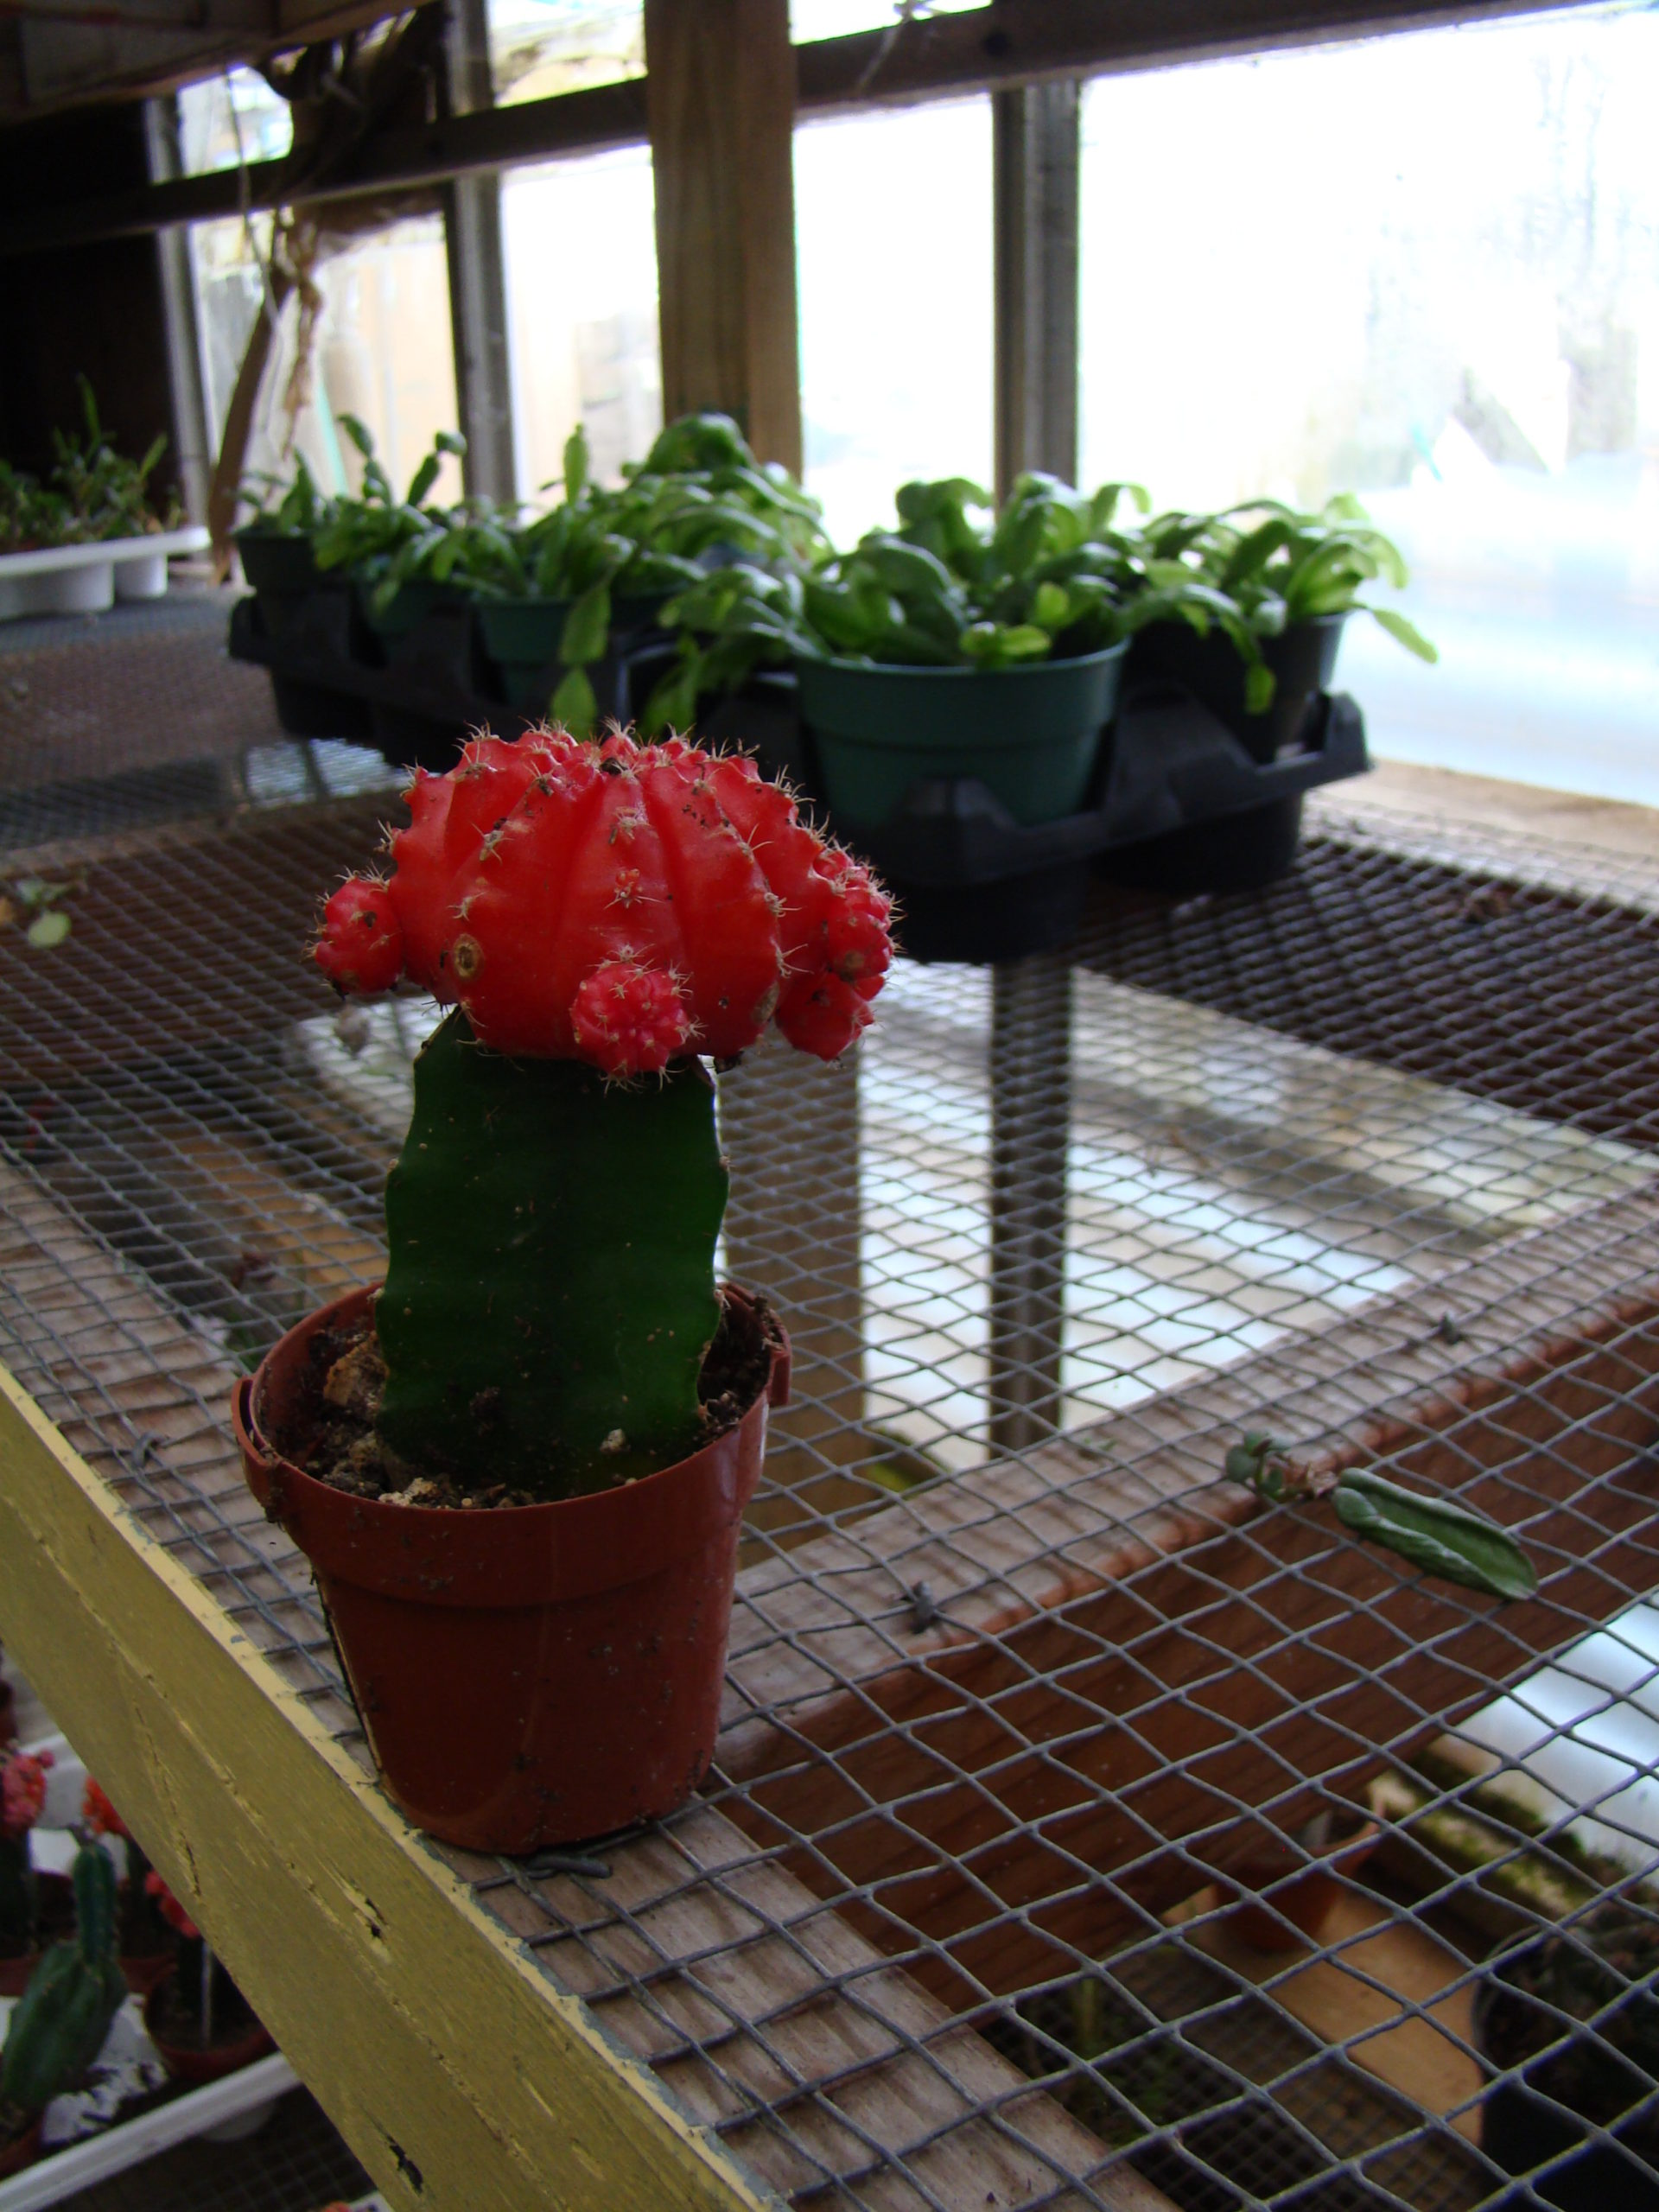 This is a grafted cactus where the colorful top is grafted to a different cactus below. These rarely live for long and can be a disappointment when give to children, giving them early black thumb phobias. It's not their fault.